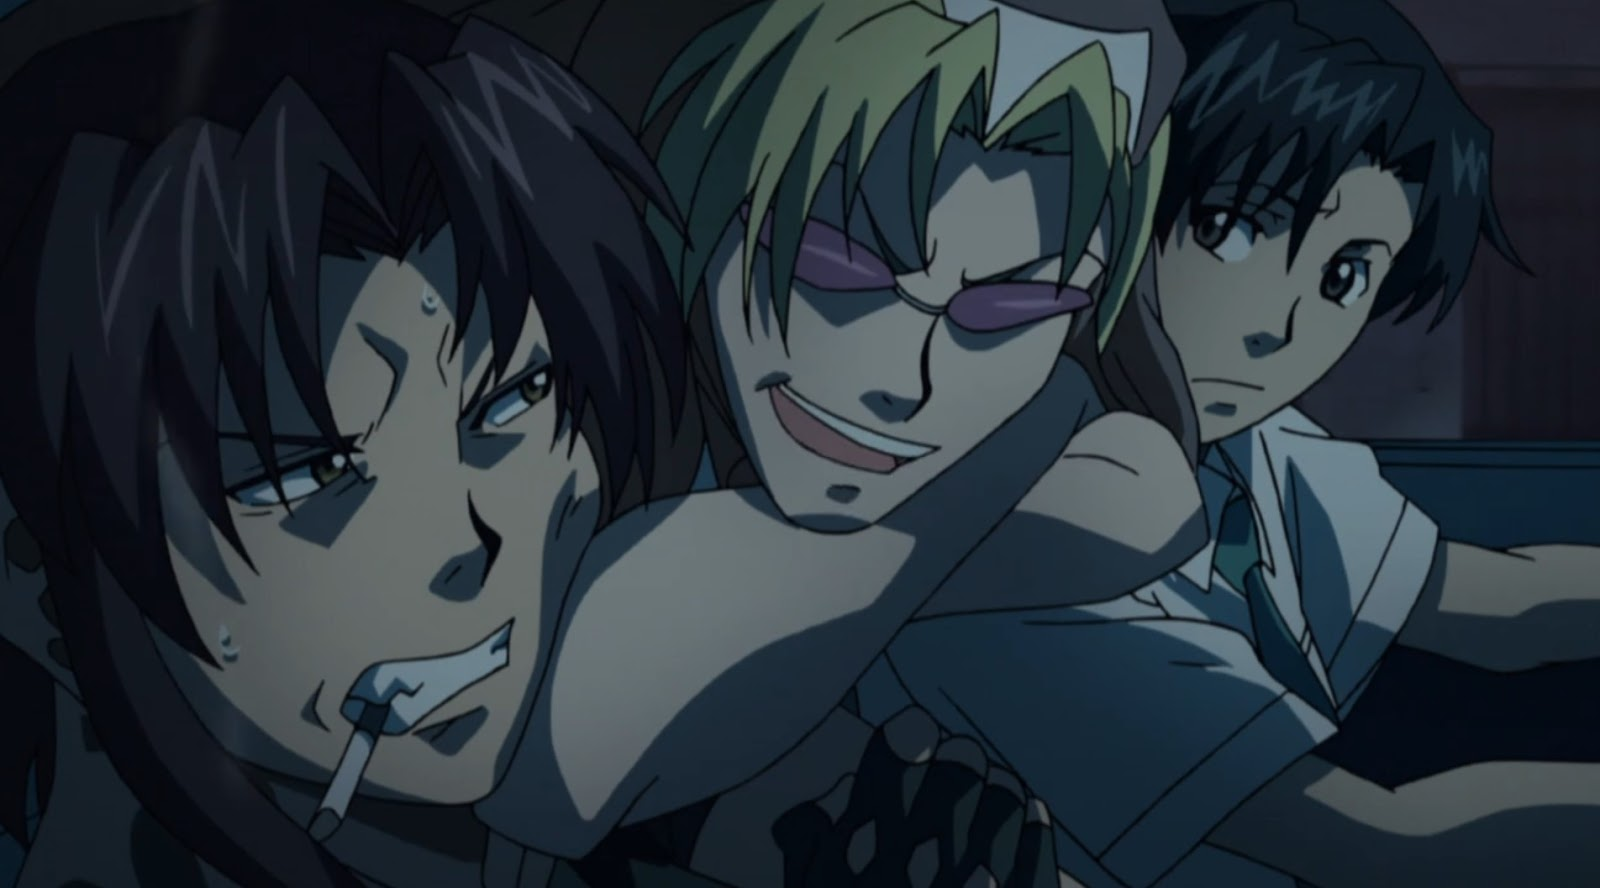 Black Lagoon: The Second Barrage – Episódio 05, Black Lagoon: The Second Barrage – Episódio 05, Black Lagoon: The Second Barrage Legendado ,Assistir